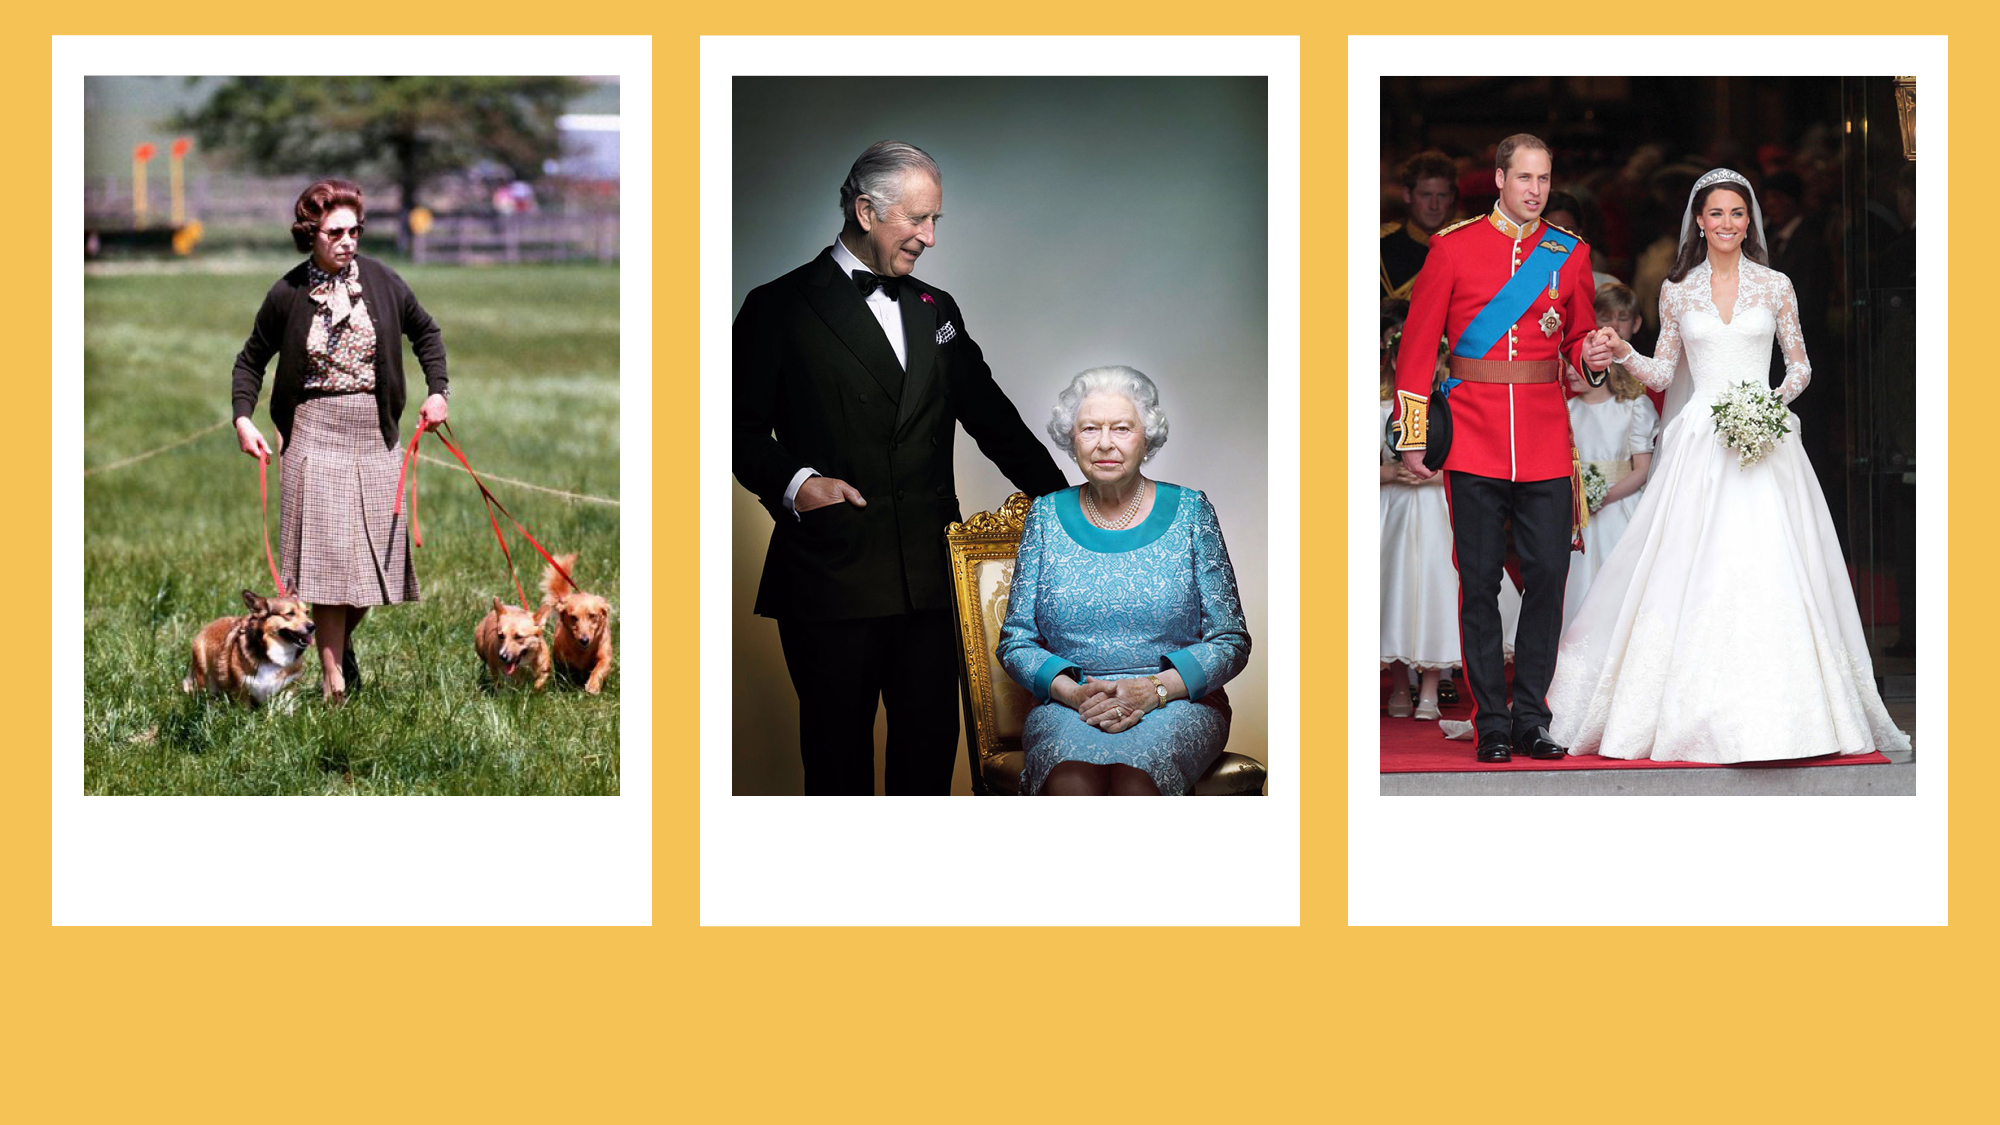 iconic royal family photos 26 moments steeped in history